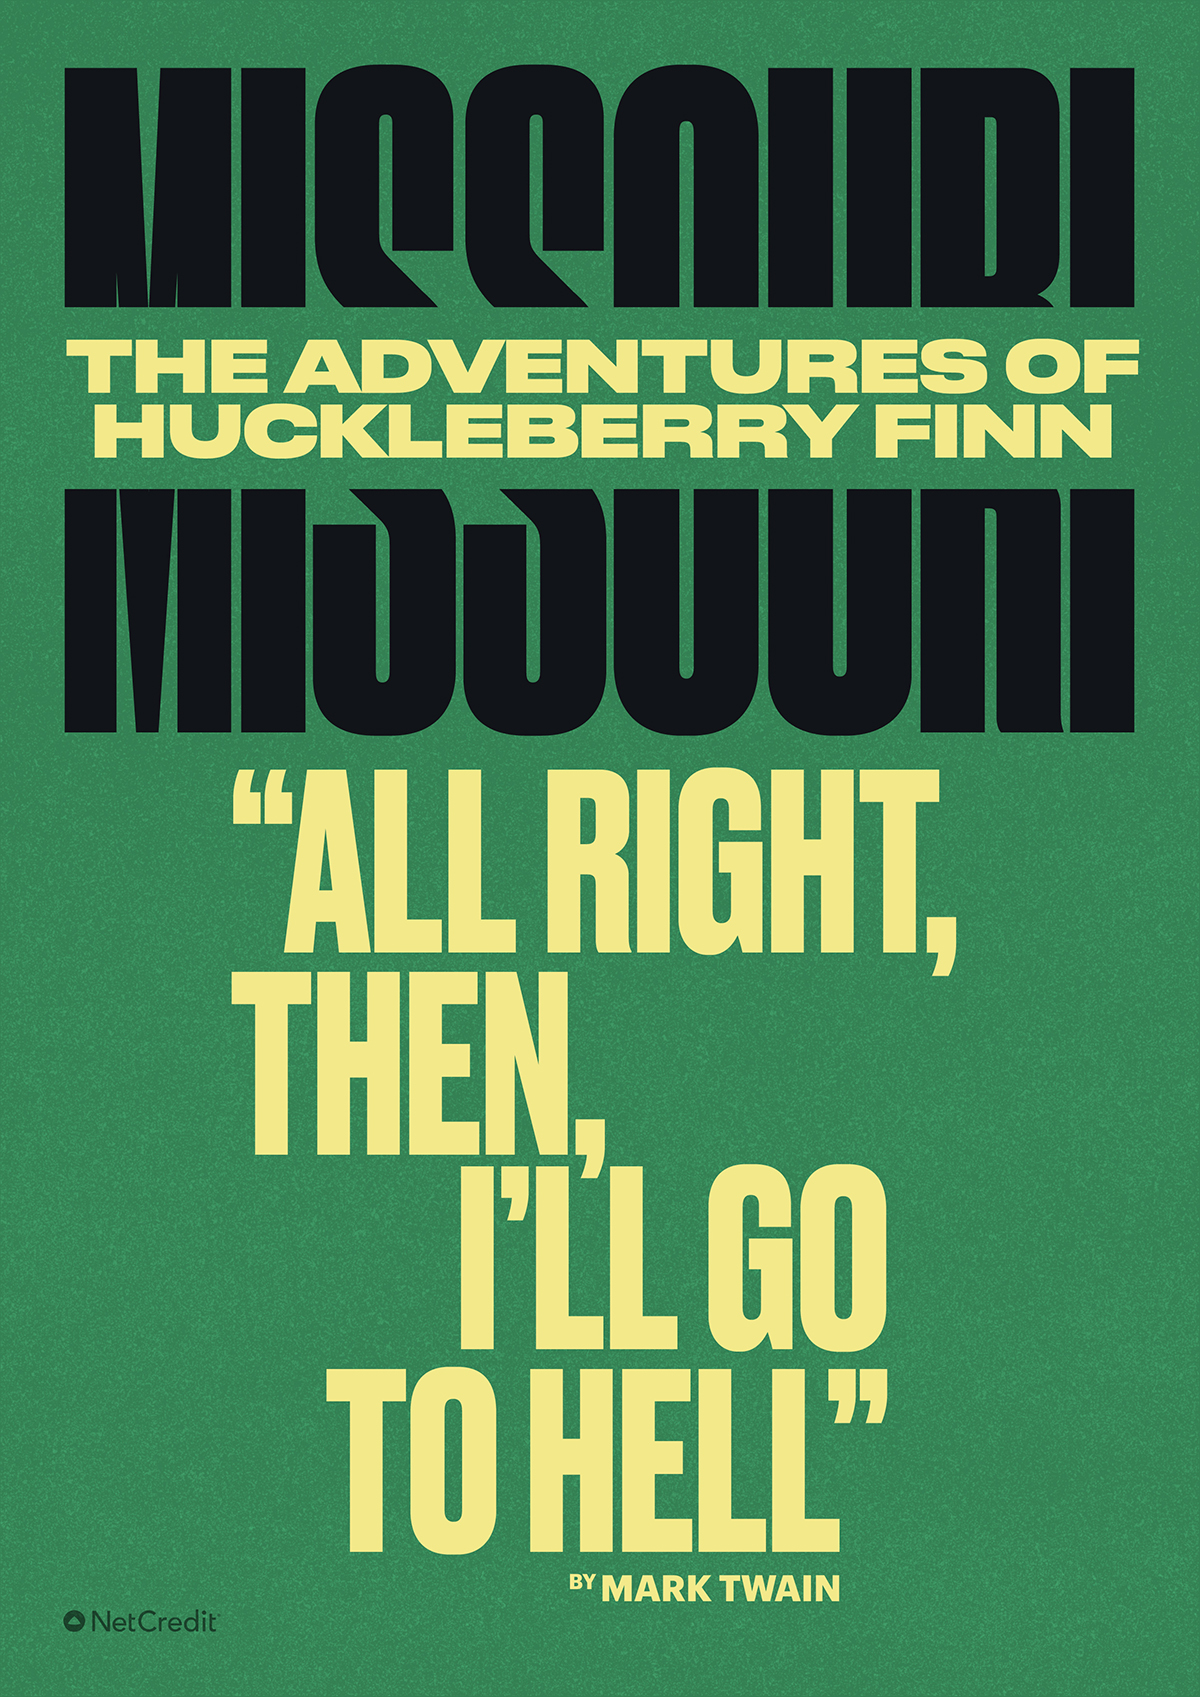 The Adventures of Huckleberry Finn Missouri